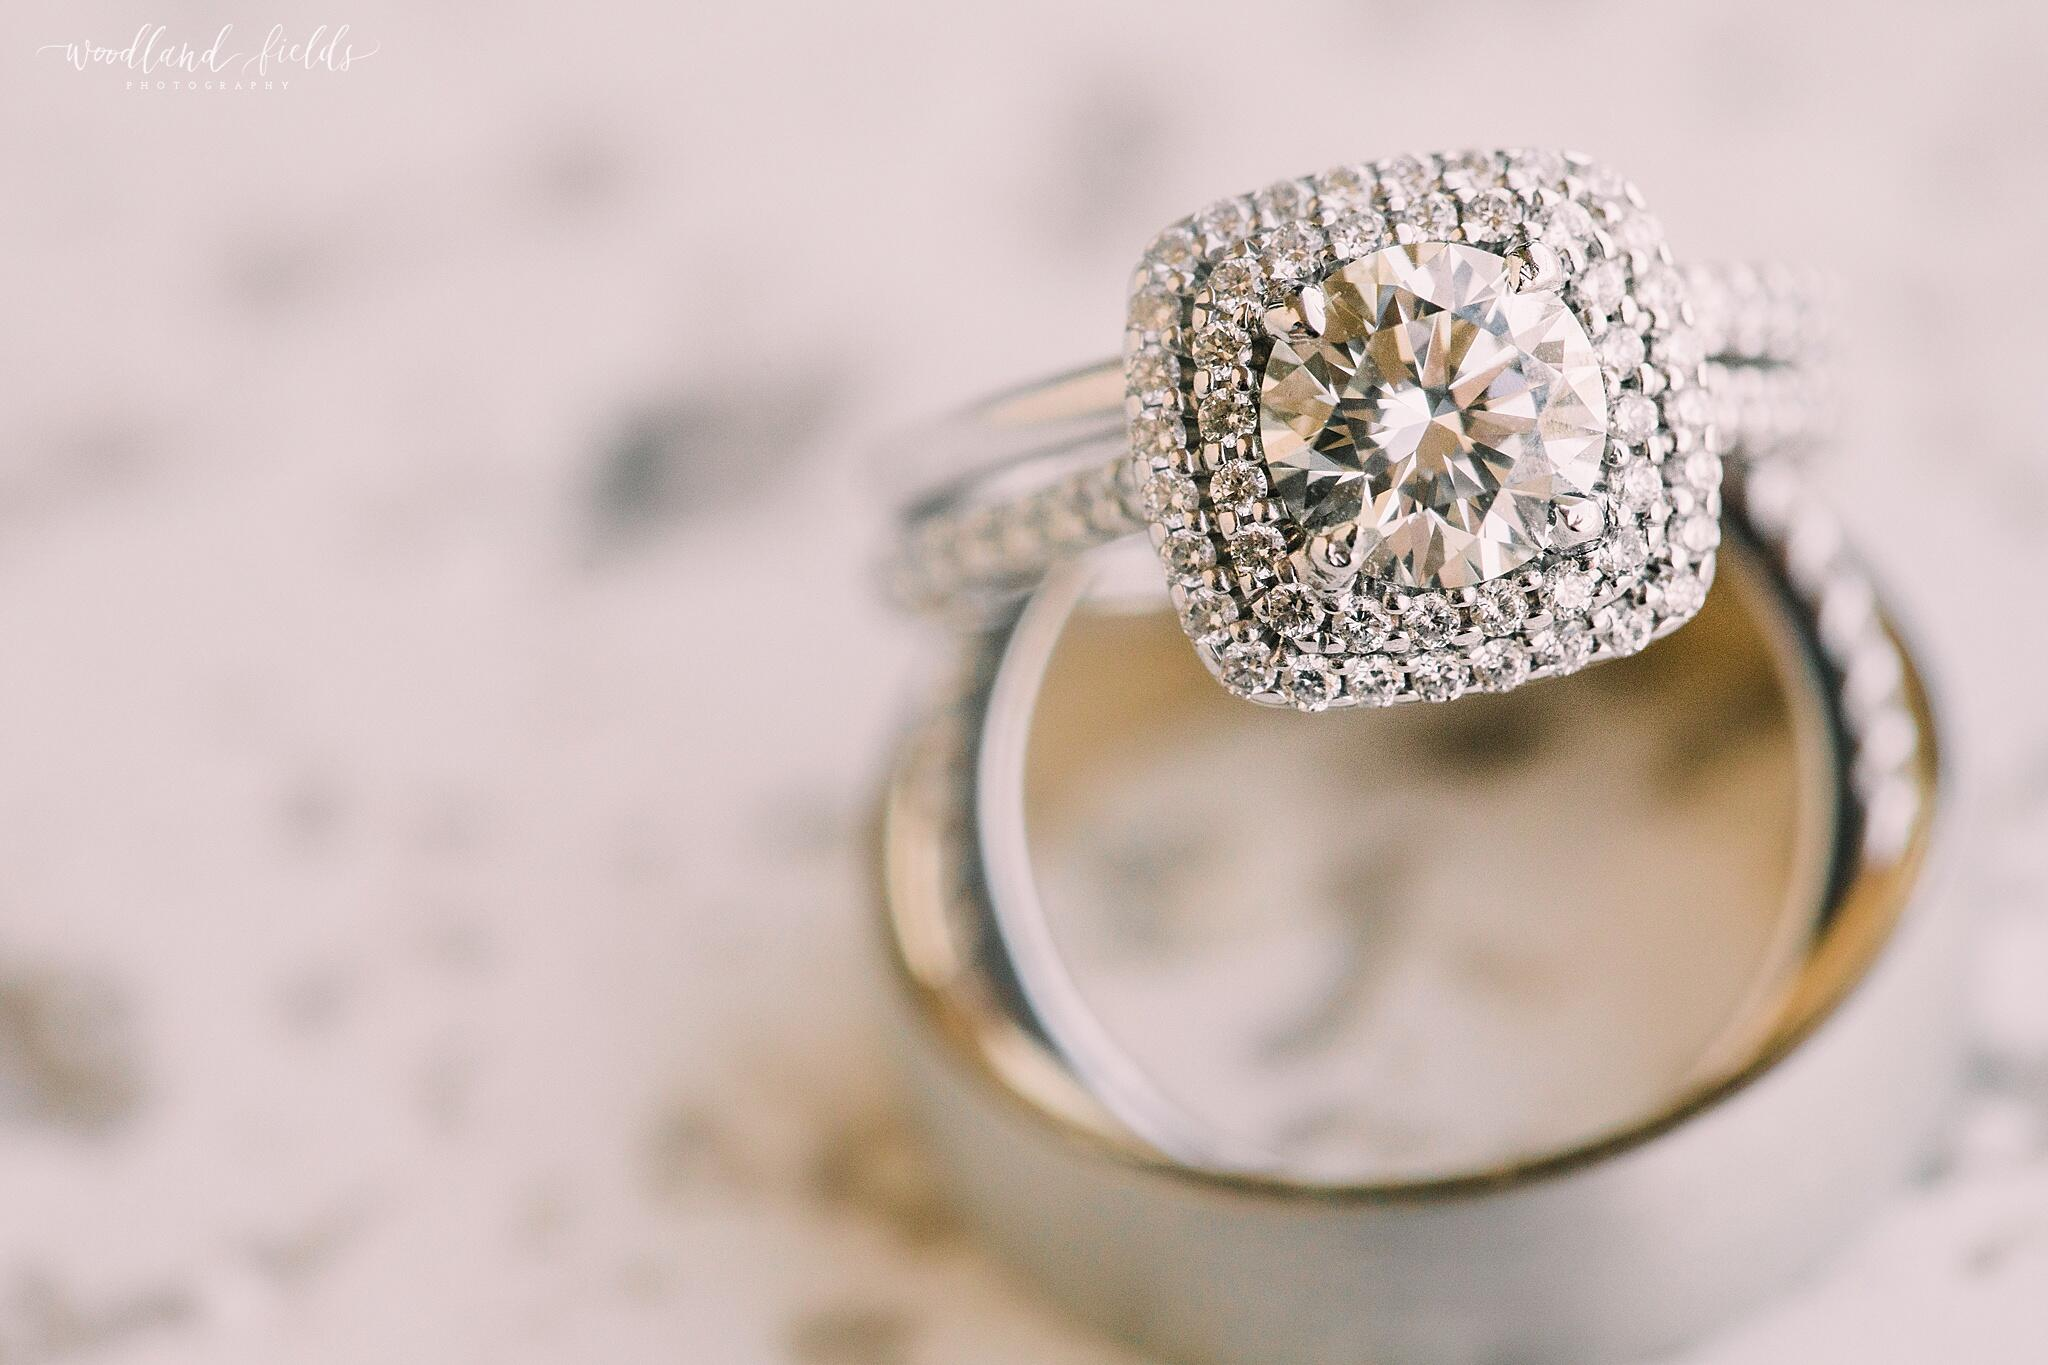 Close-up shot of a diamond engagement ring